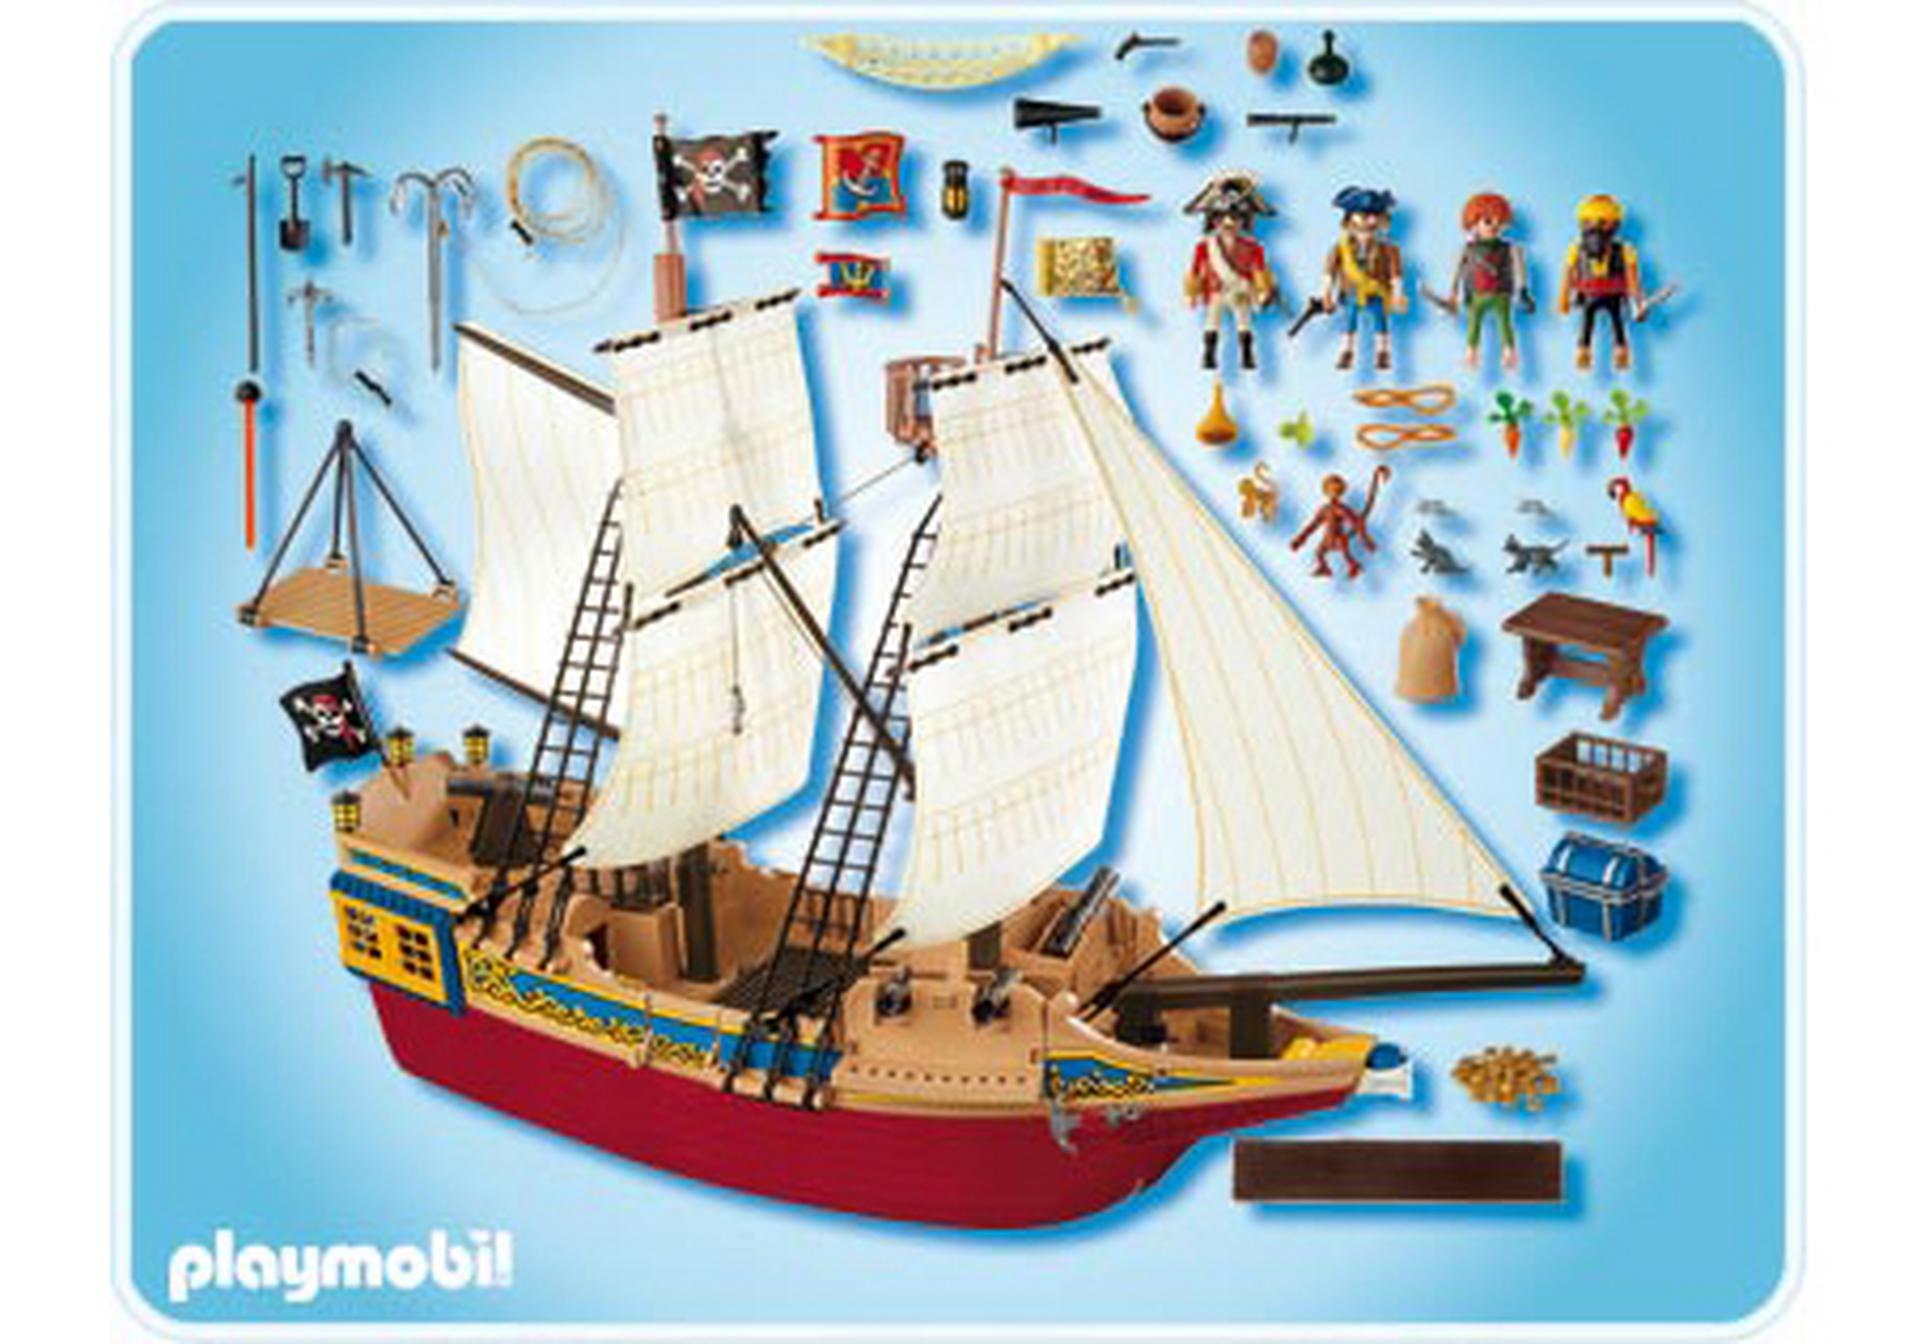 large pirate ship 4290 a playmobil. Black Bedroom Furniture Sets. Home Design Ideas